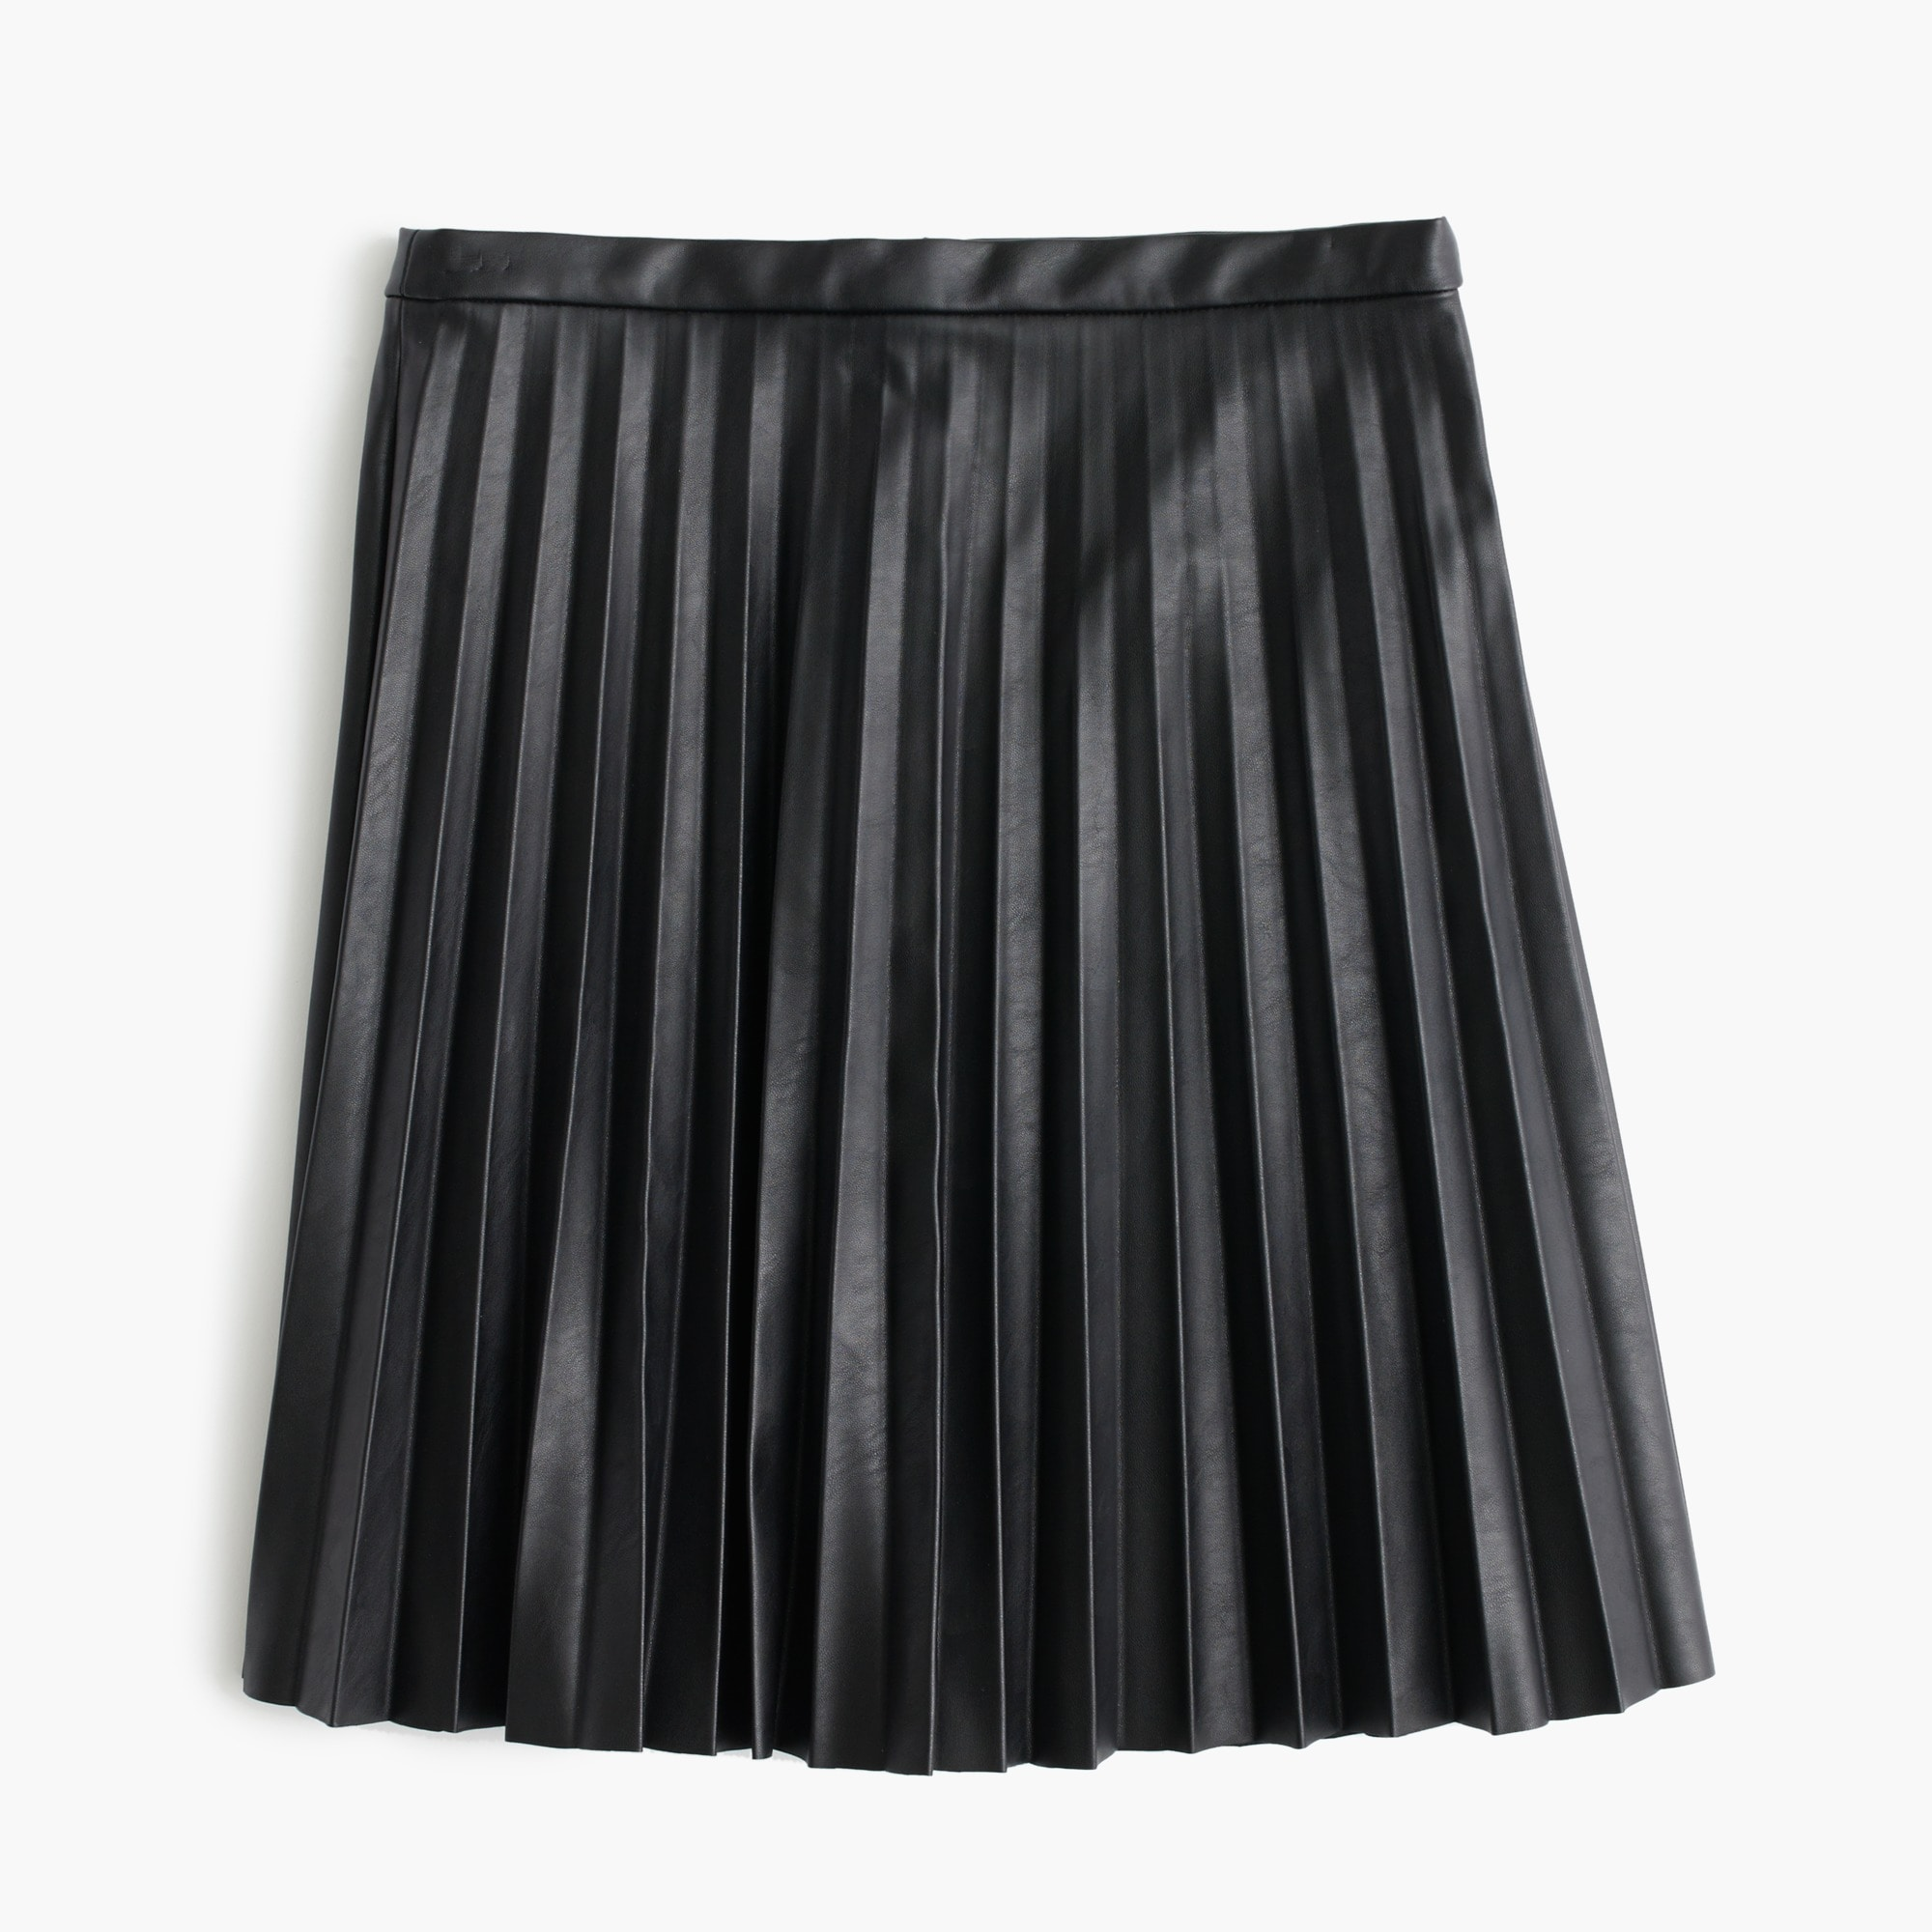 Image 2 for Petite faux-leather pleated mini skirt